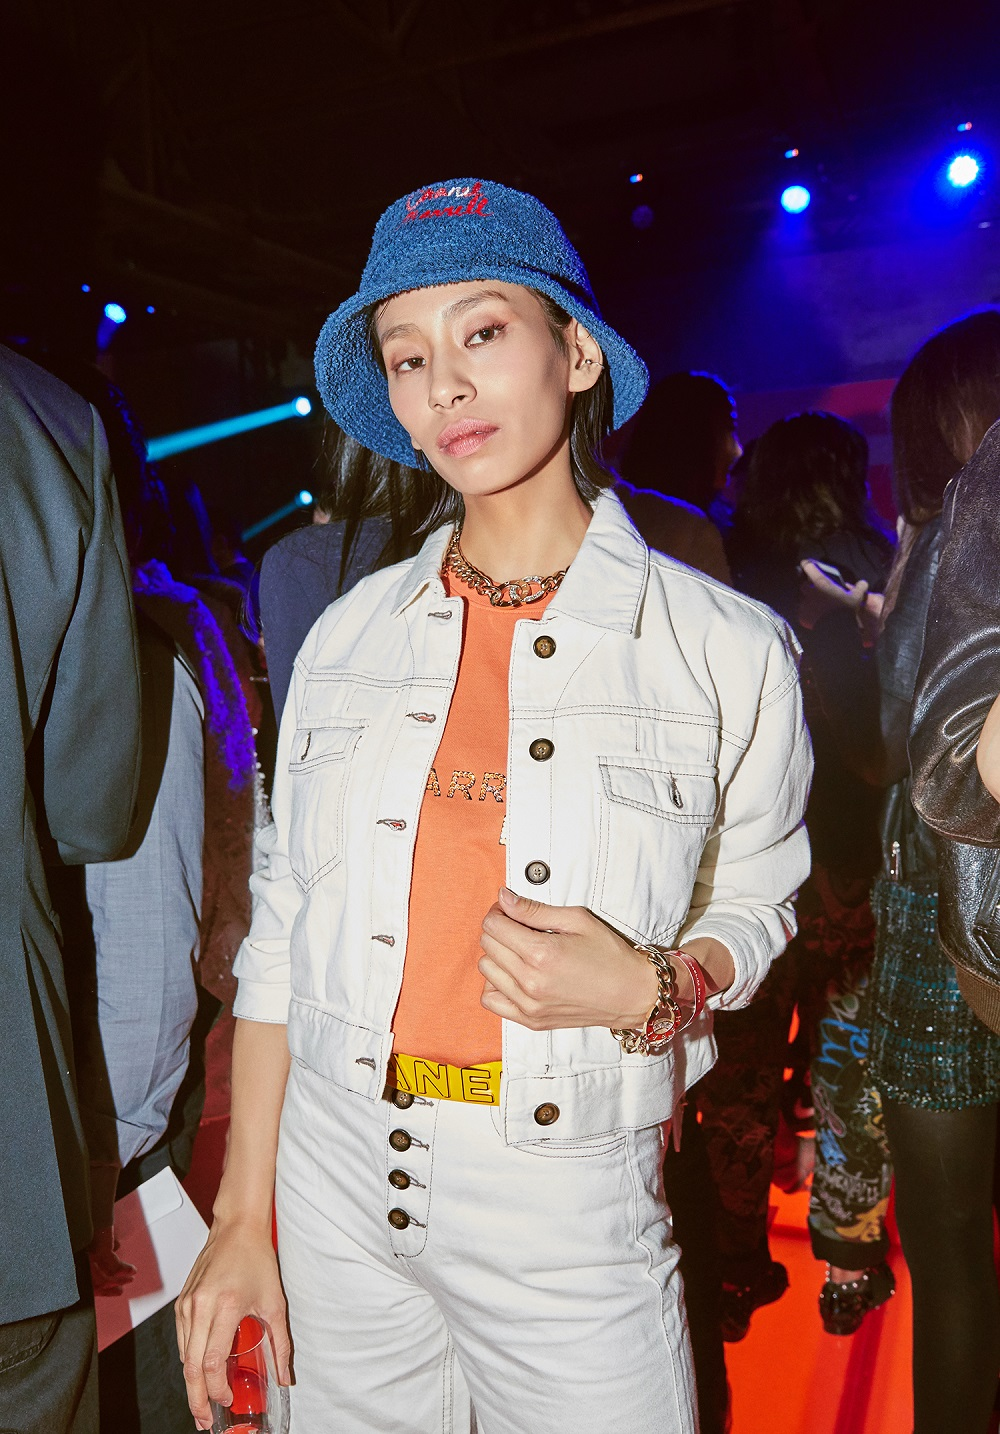 Anna Kim wore an orange embroidered t-shirt and accessories from the CHANEL-Pharrell capsule collection.